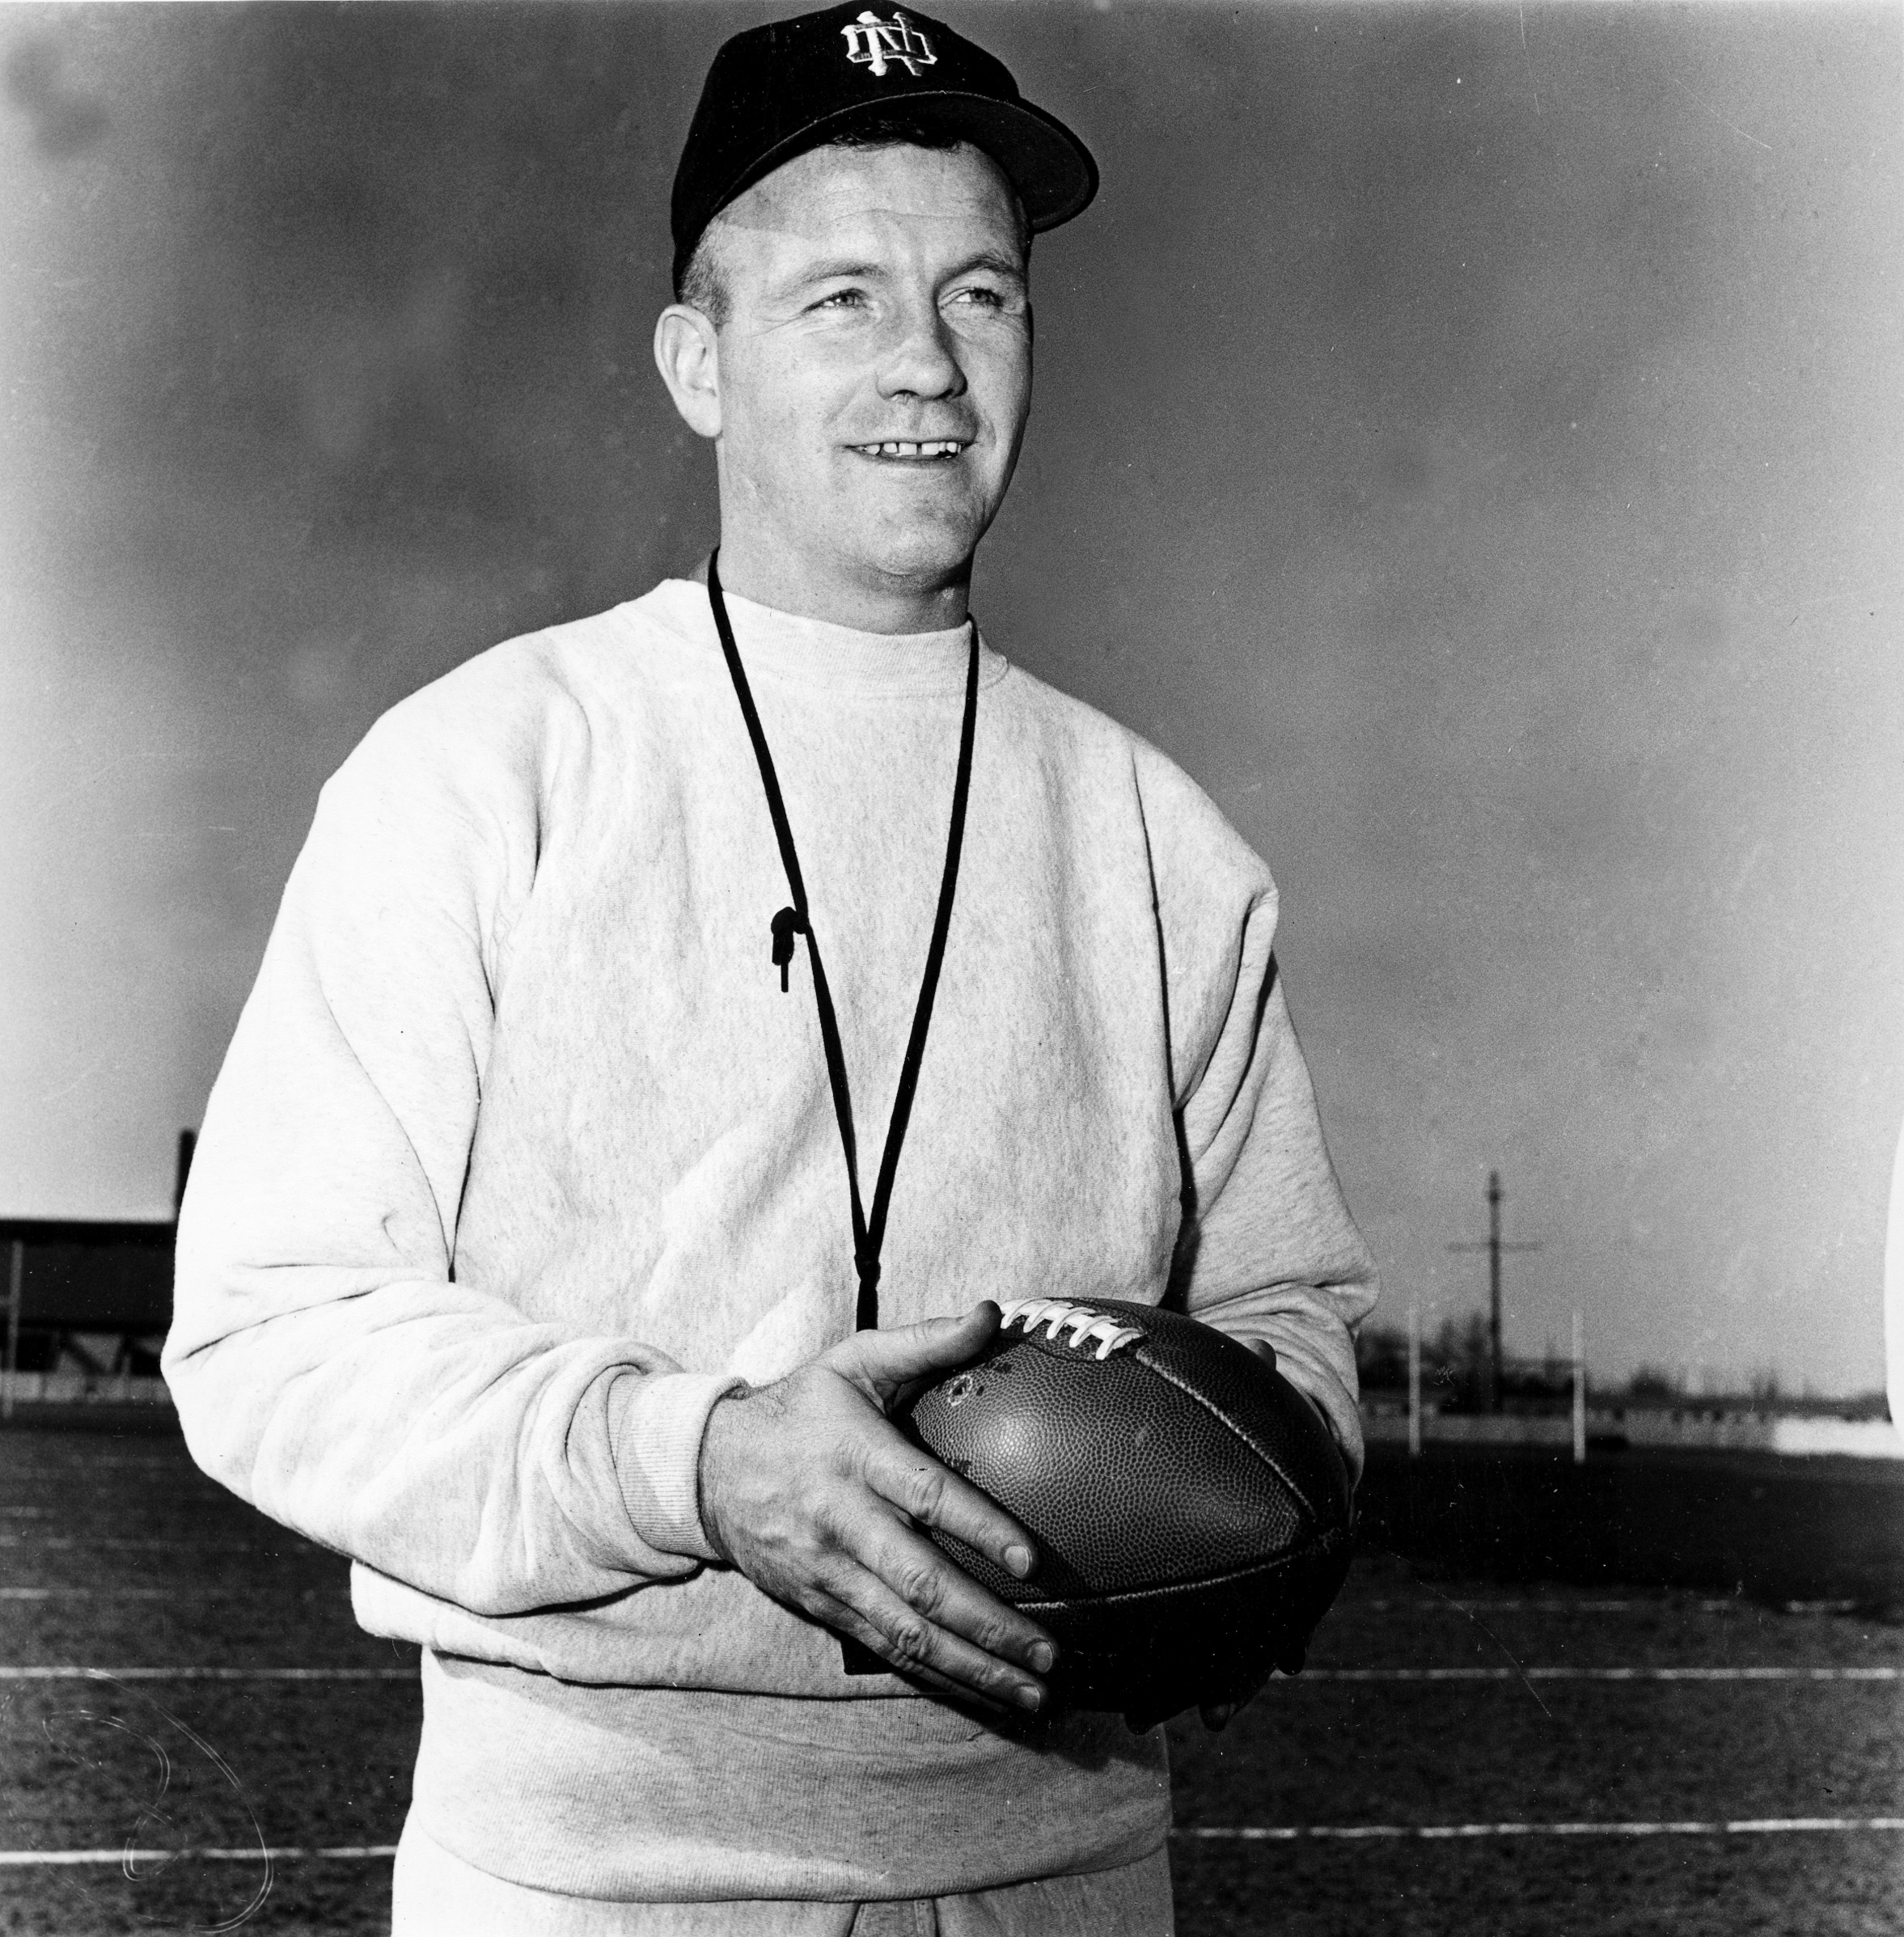 Former Notre Dame and Mount Carmel High School football coach Terry Brennan has died at age 93.